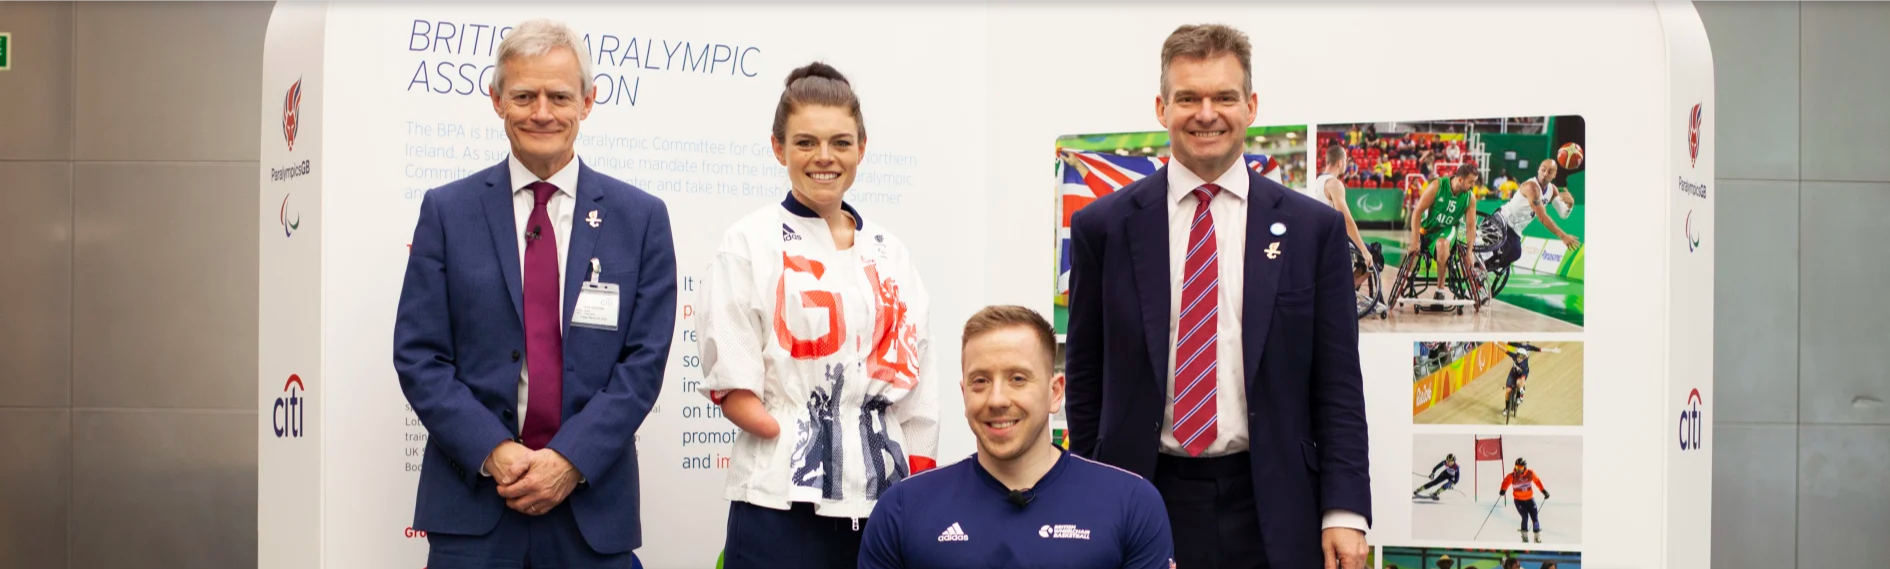 British Paralympic Association launches partnership with banking giant Citi